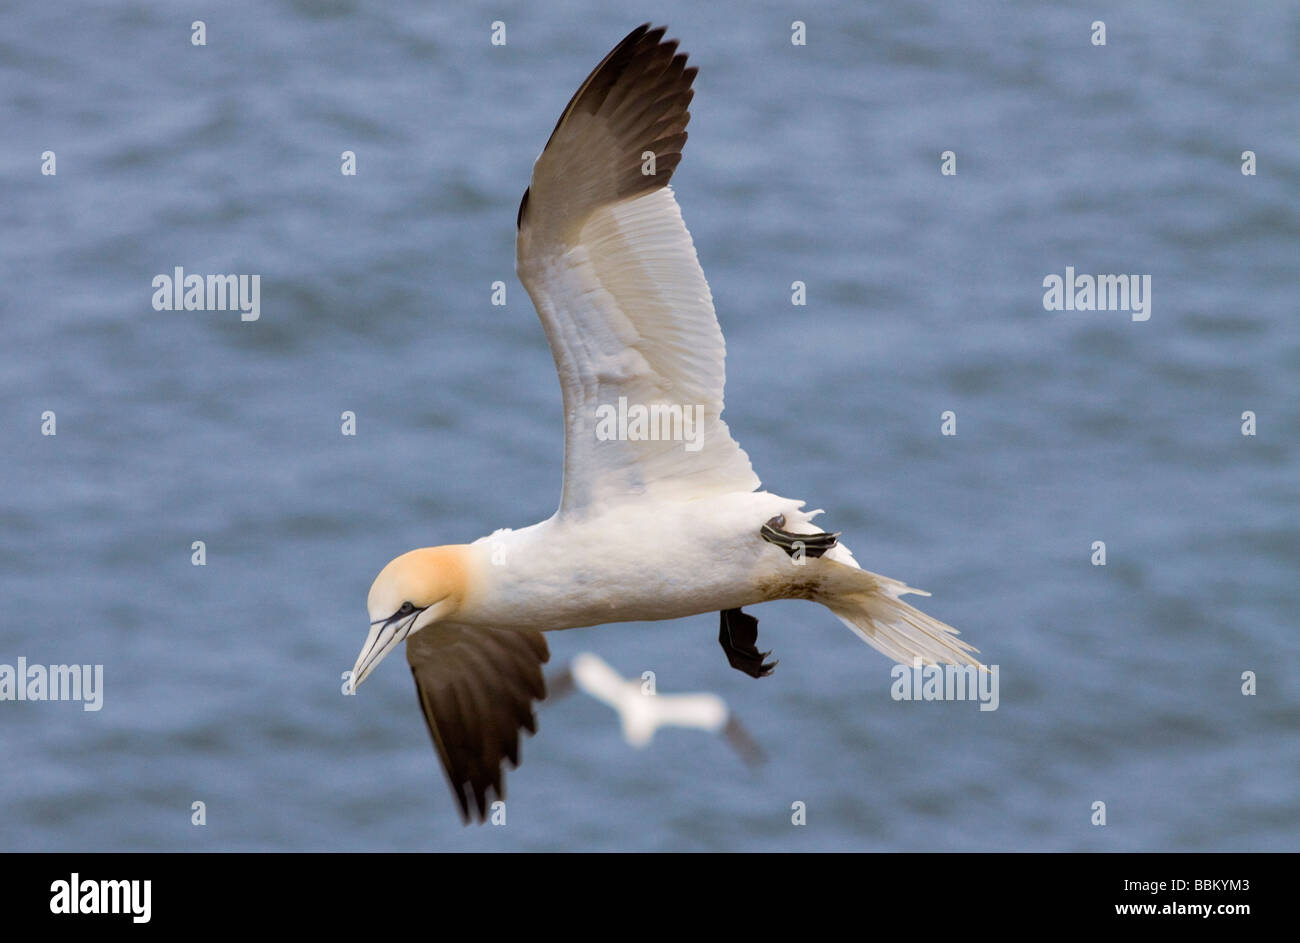 Northern Gannet swooping - Stock Image